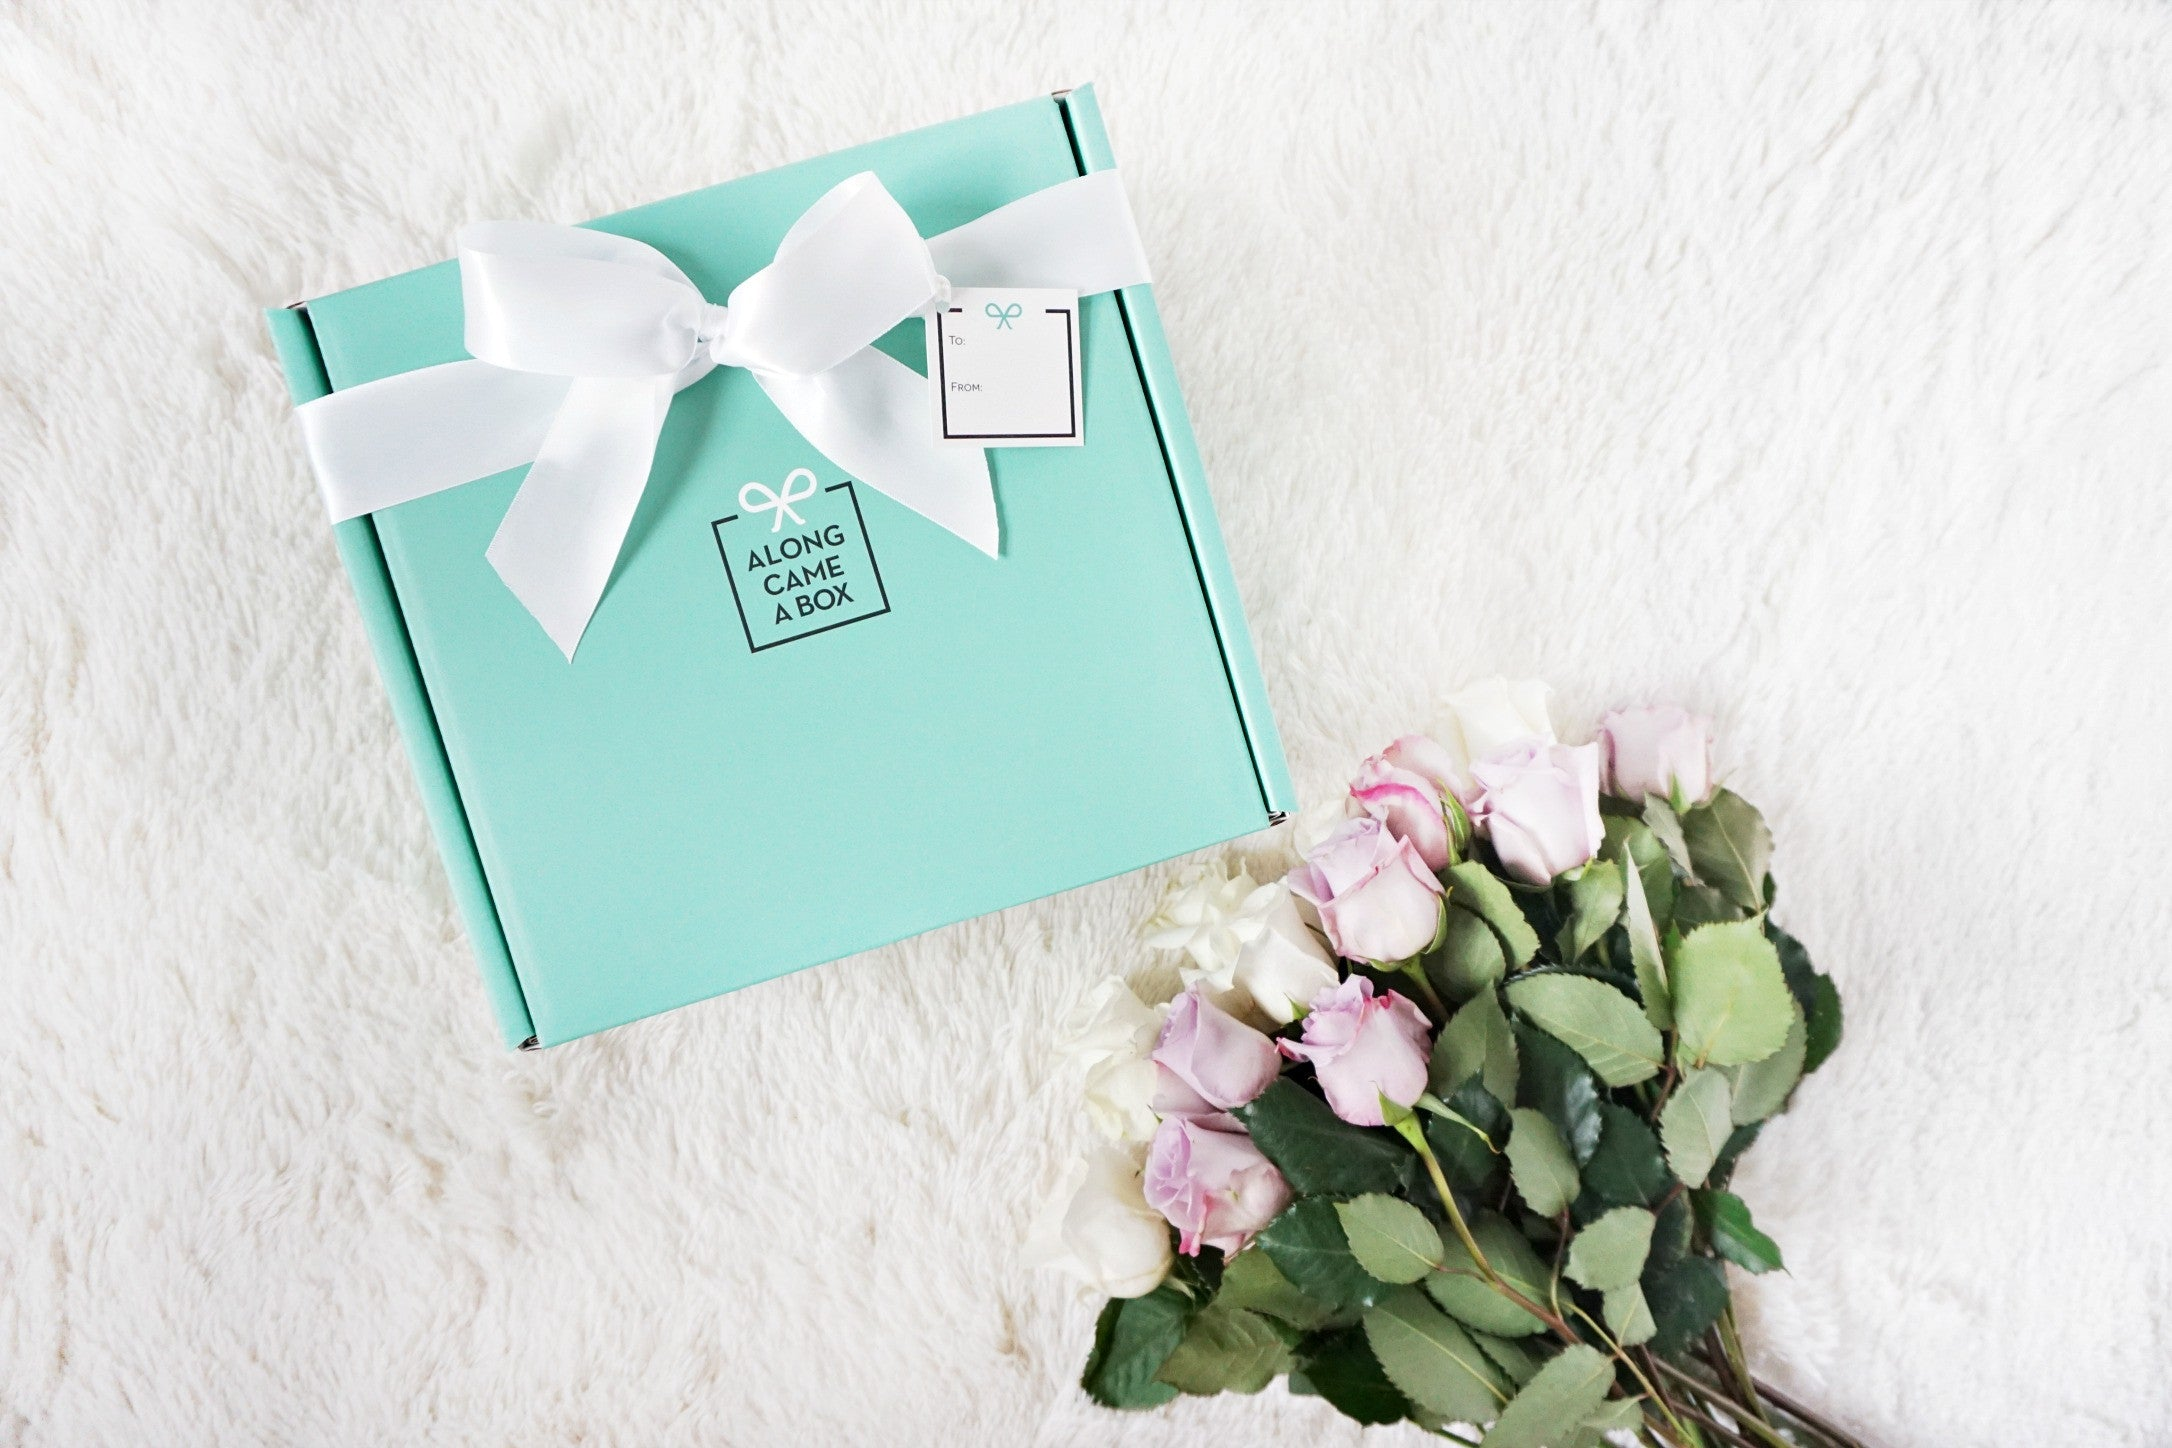 Thank You Box